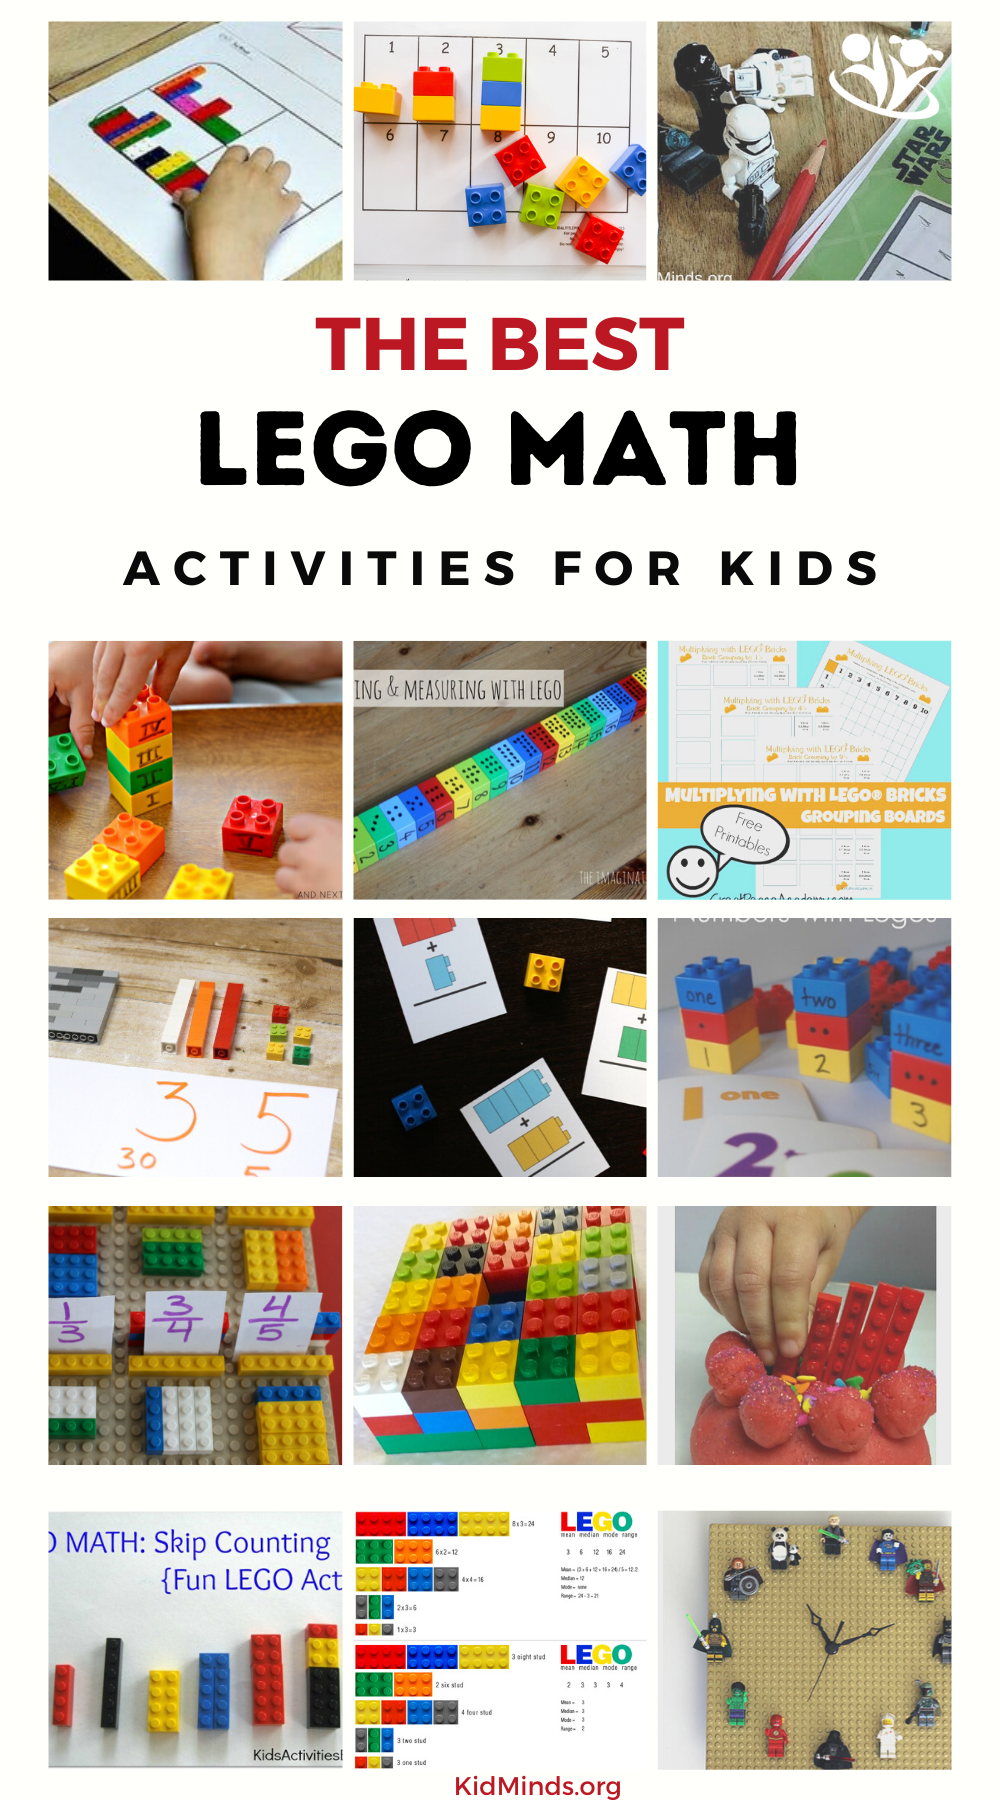 LEGO STEAM. LEGO play brings many mathematical concepts to life by making them visible and tangible. #LEGO #STEAM #kidsactivities #math #handsonlearning